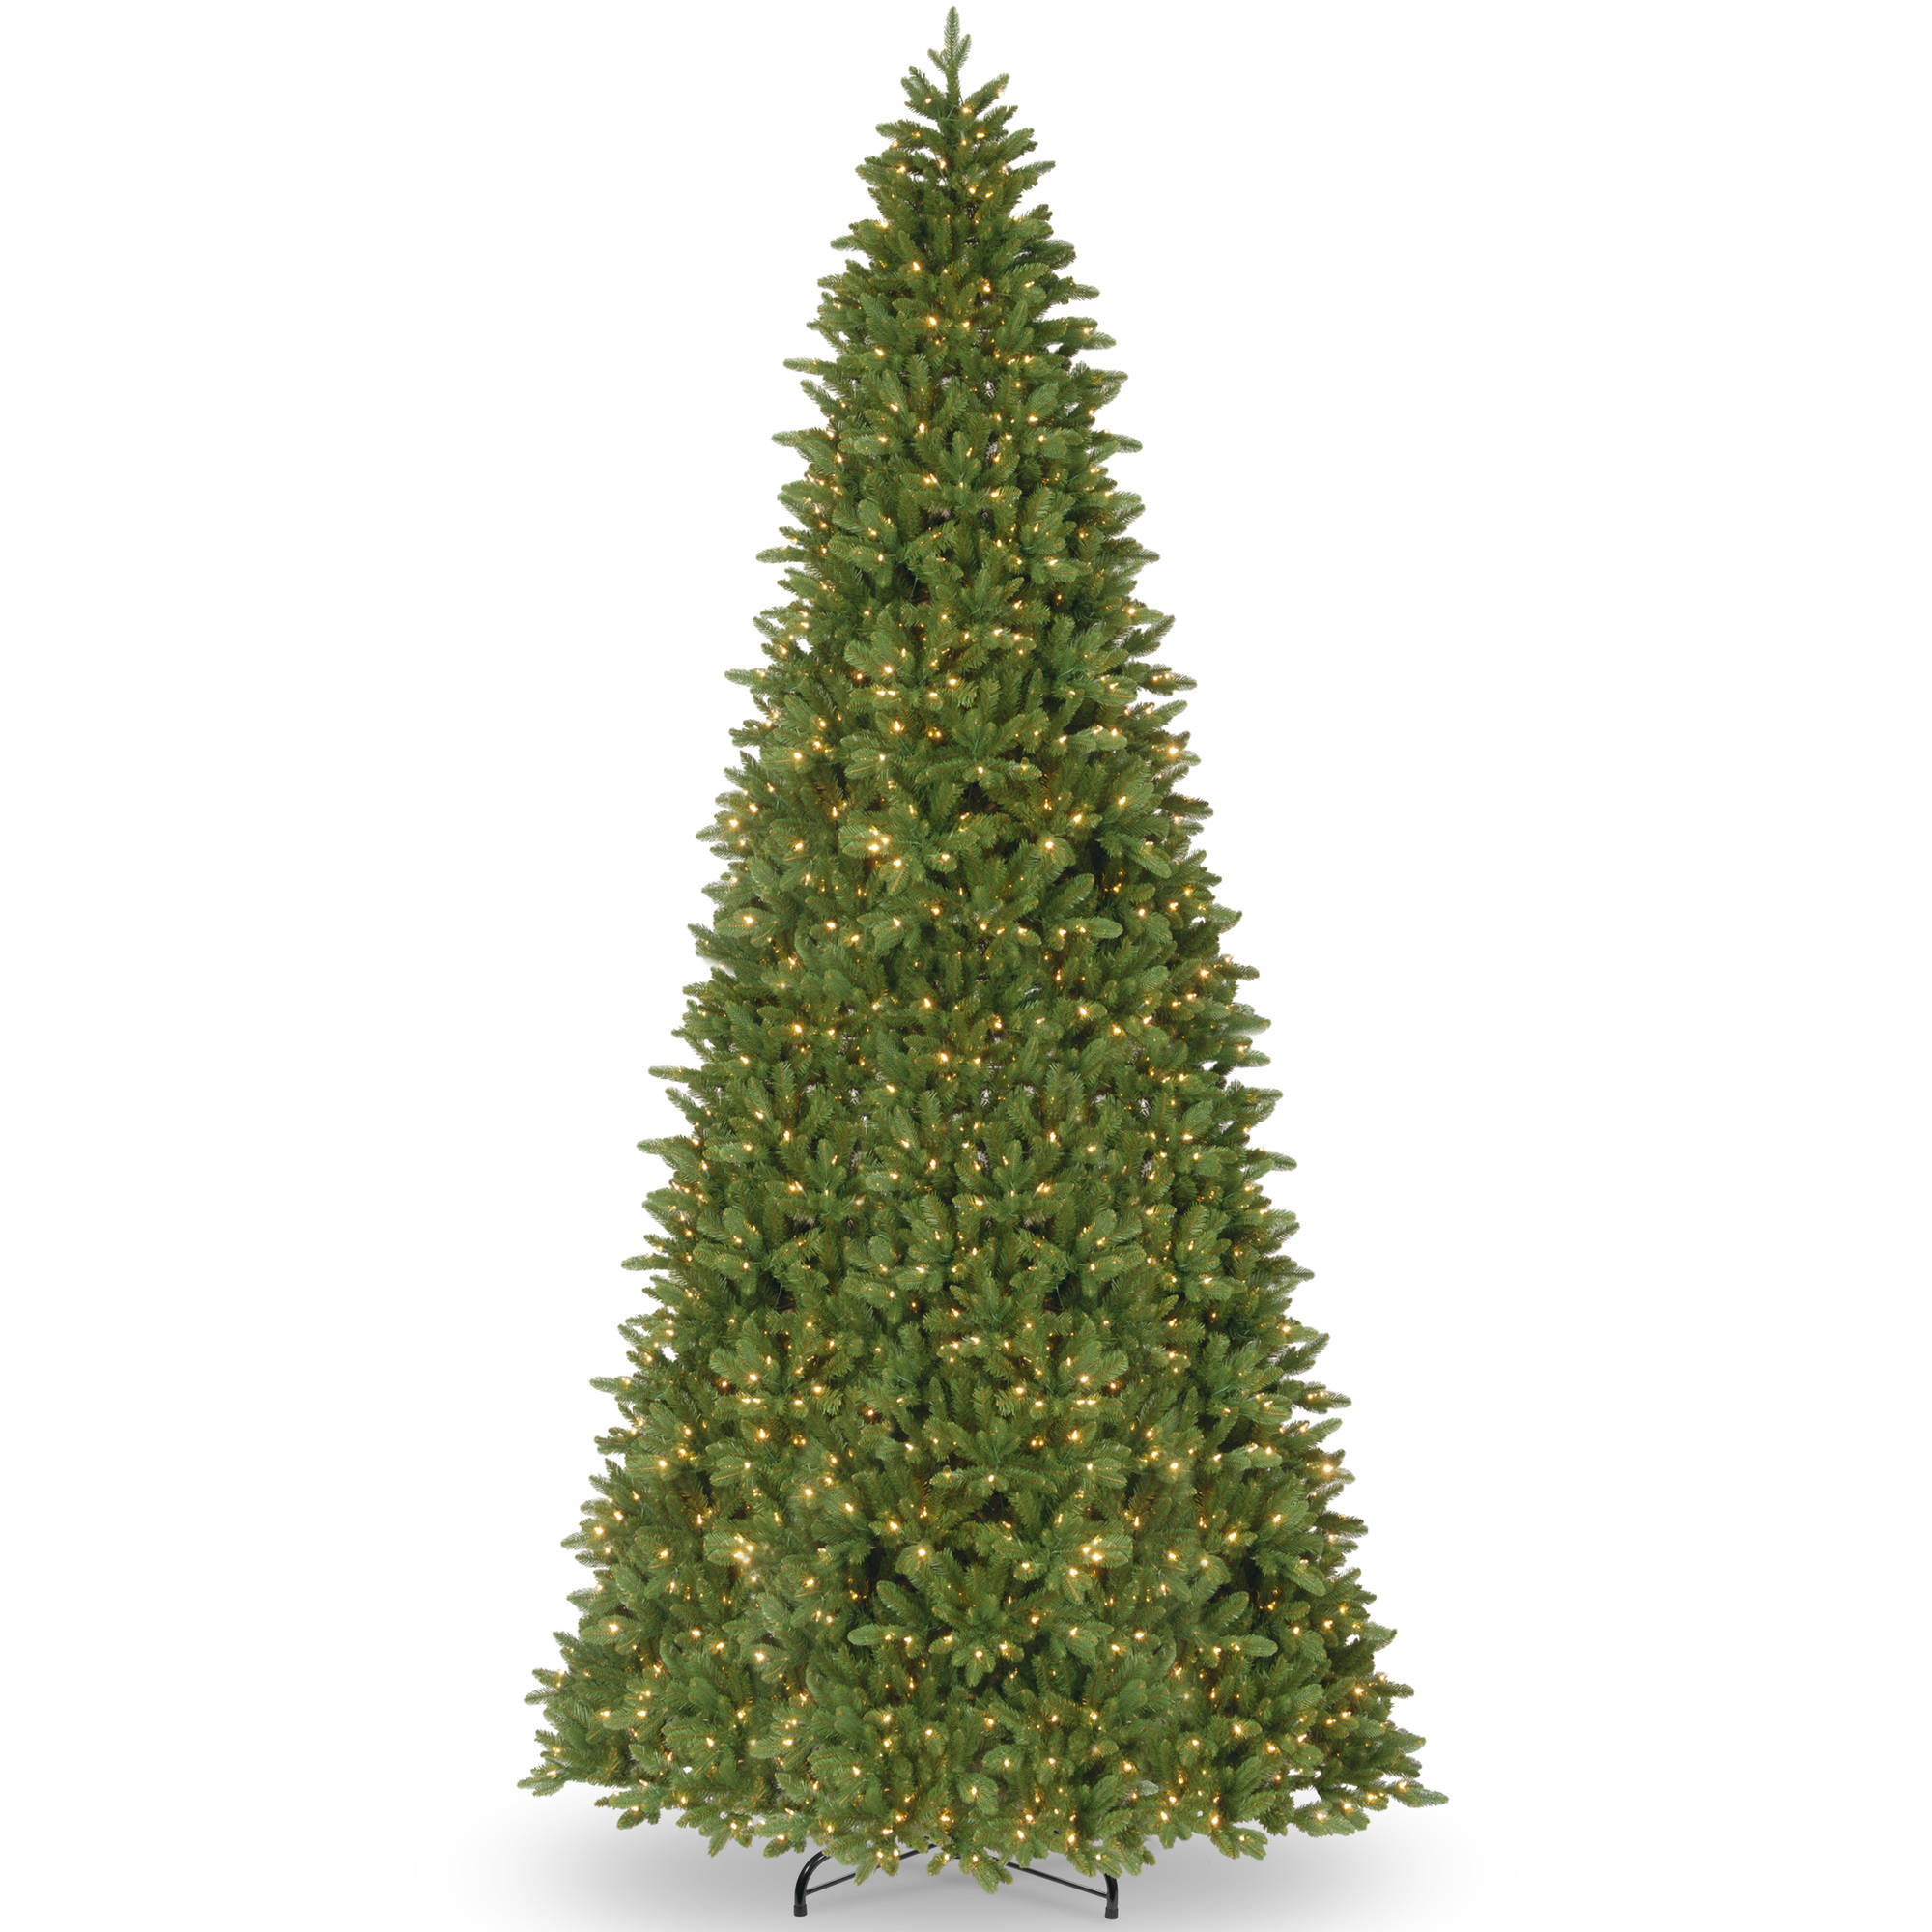 14' Ridgewood Spruce Slim Tree with Clear Lights